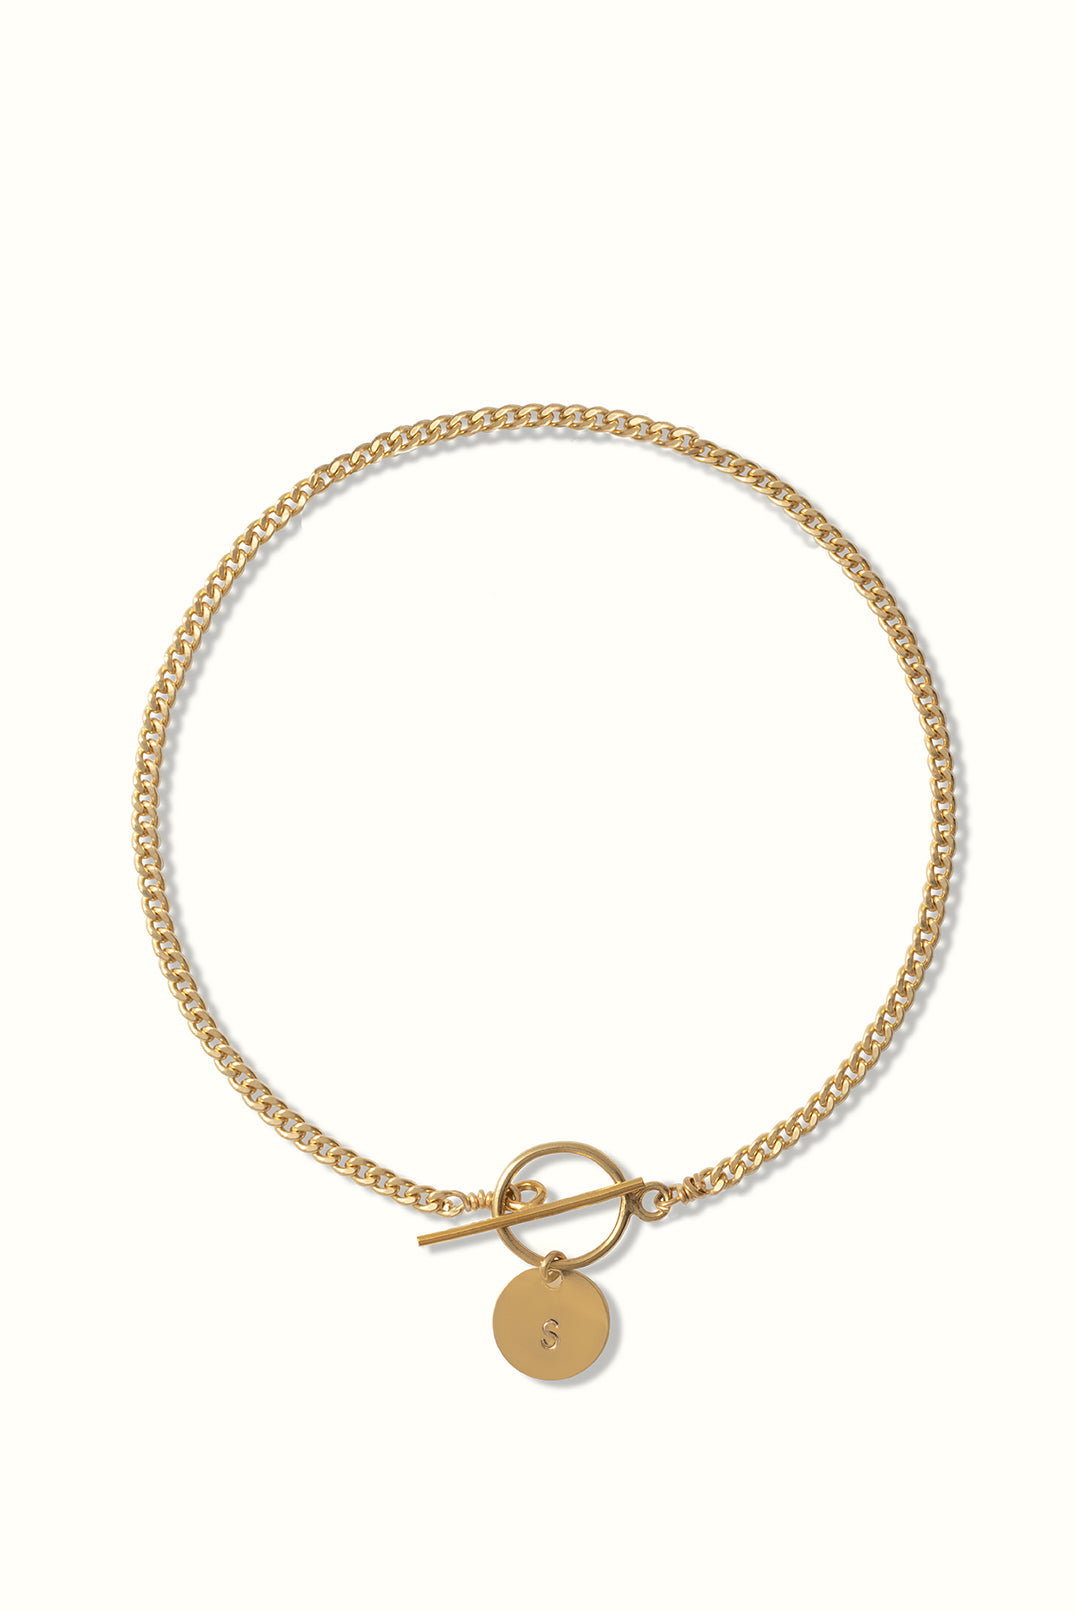 a gold filled curb chain bracelet with a toggle clasp and a round initial pendant